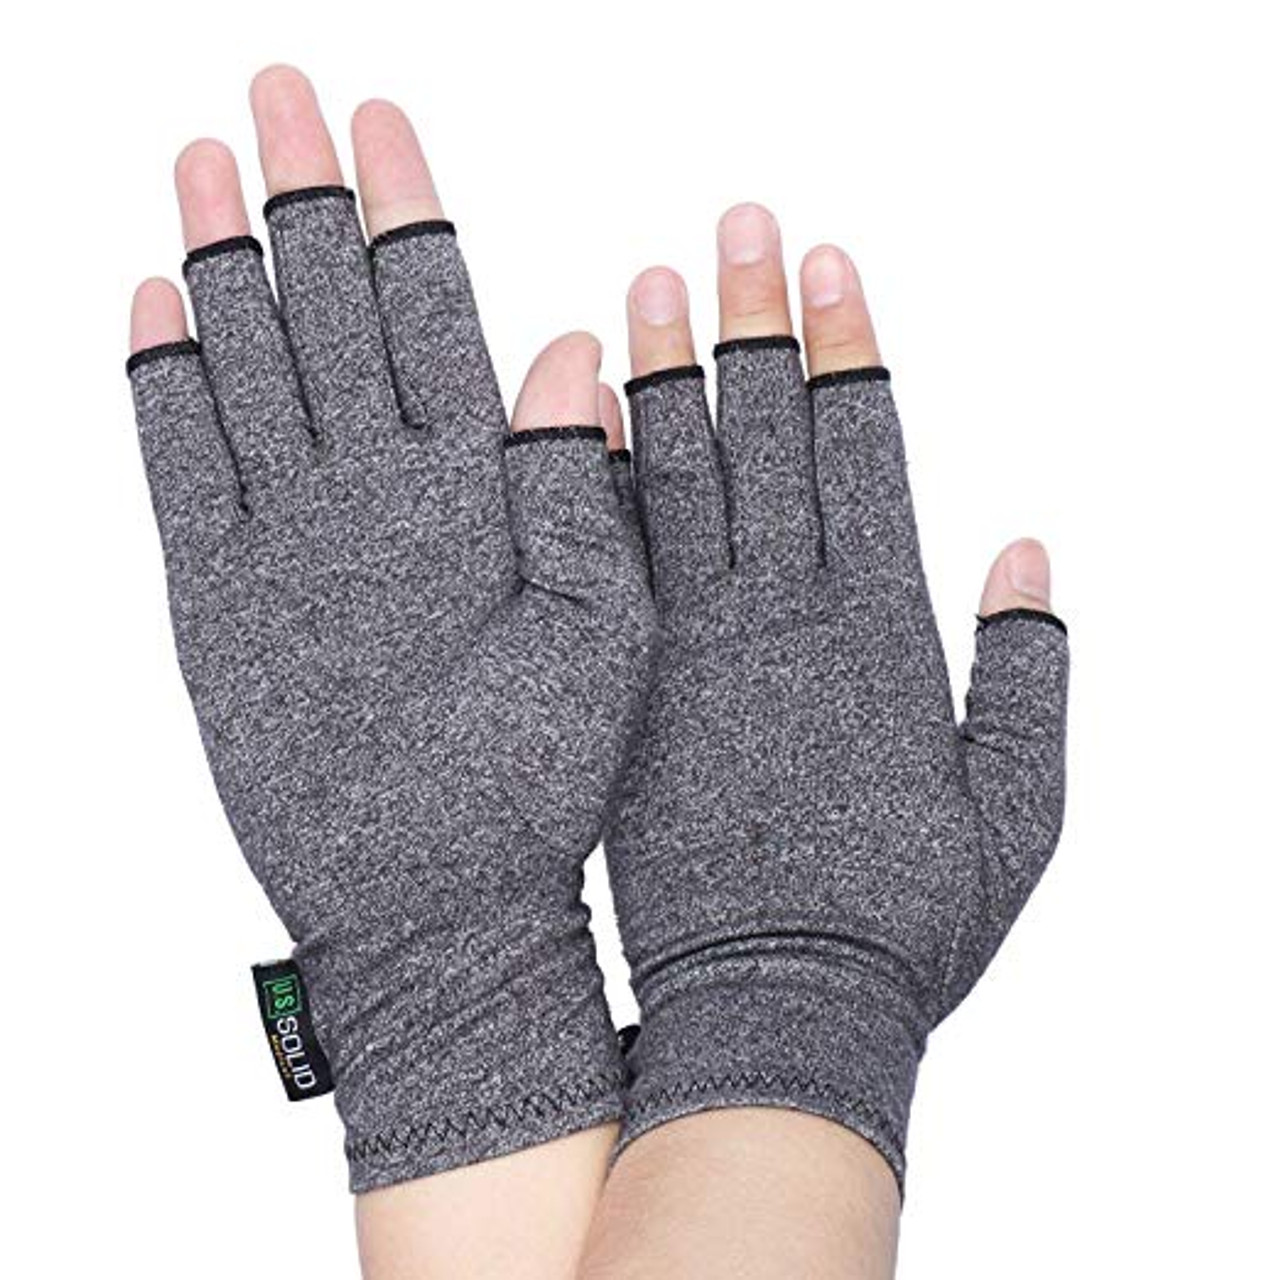 "Compression Gloves- Relieve Arthritis Pain, Large(Dia. of palm > 4"")"